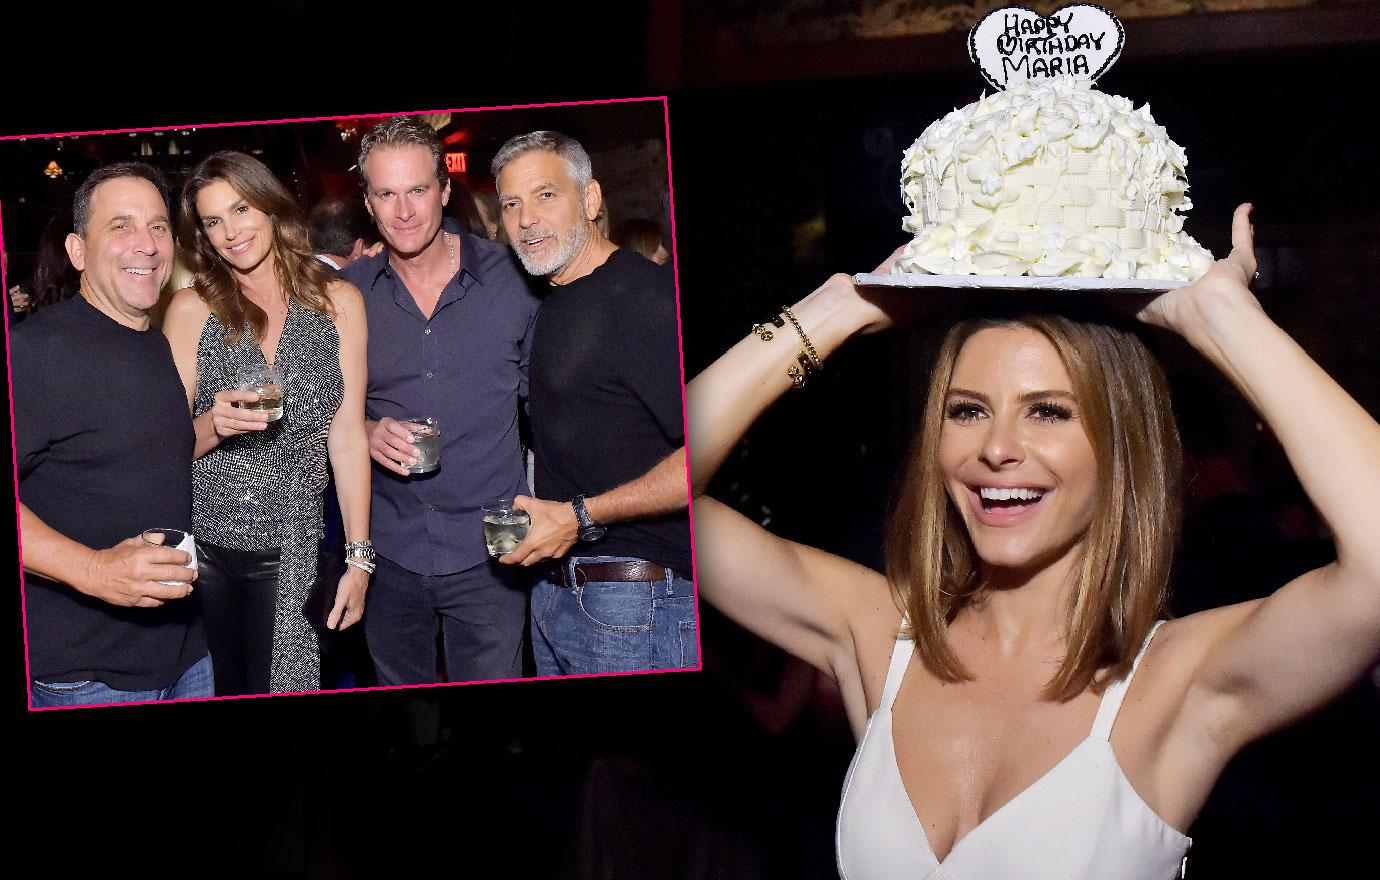 Maria Menounos Celebrates 40th Birthday After Health Woes